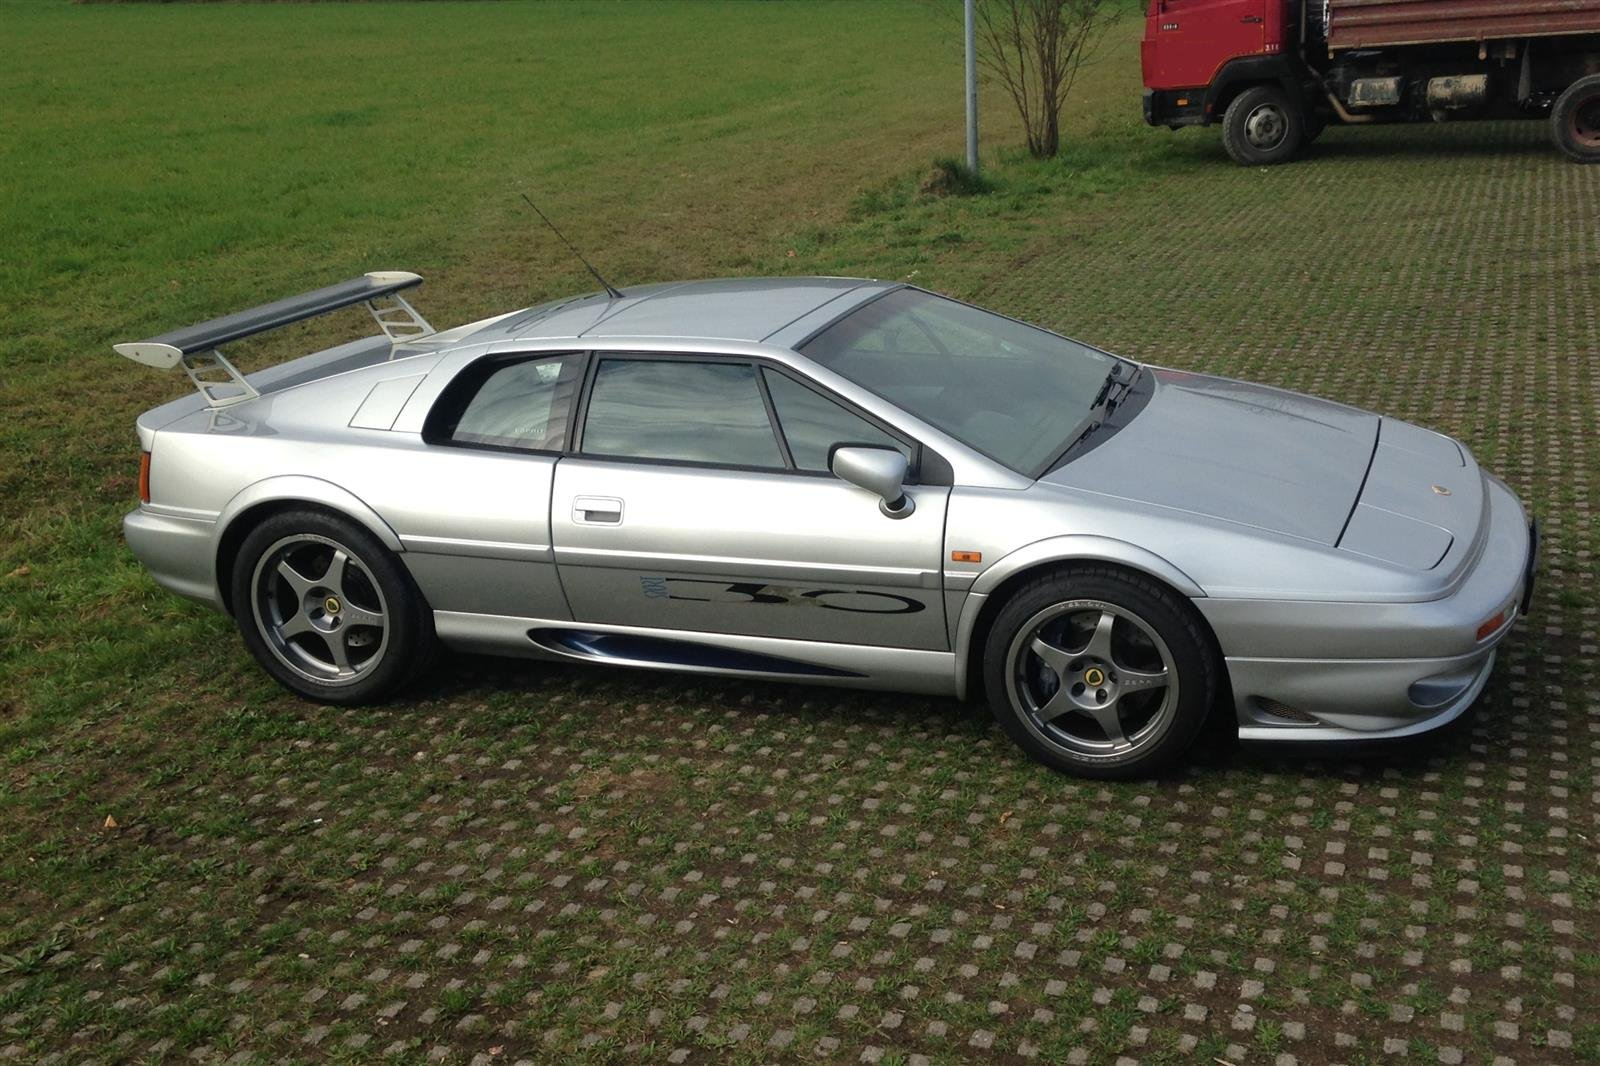 1999 Lotus Esprit V8 350 Sport - N°28 of 43 For Sale (picture 2 of 6)